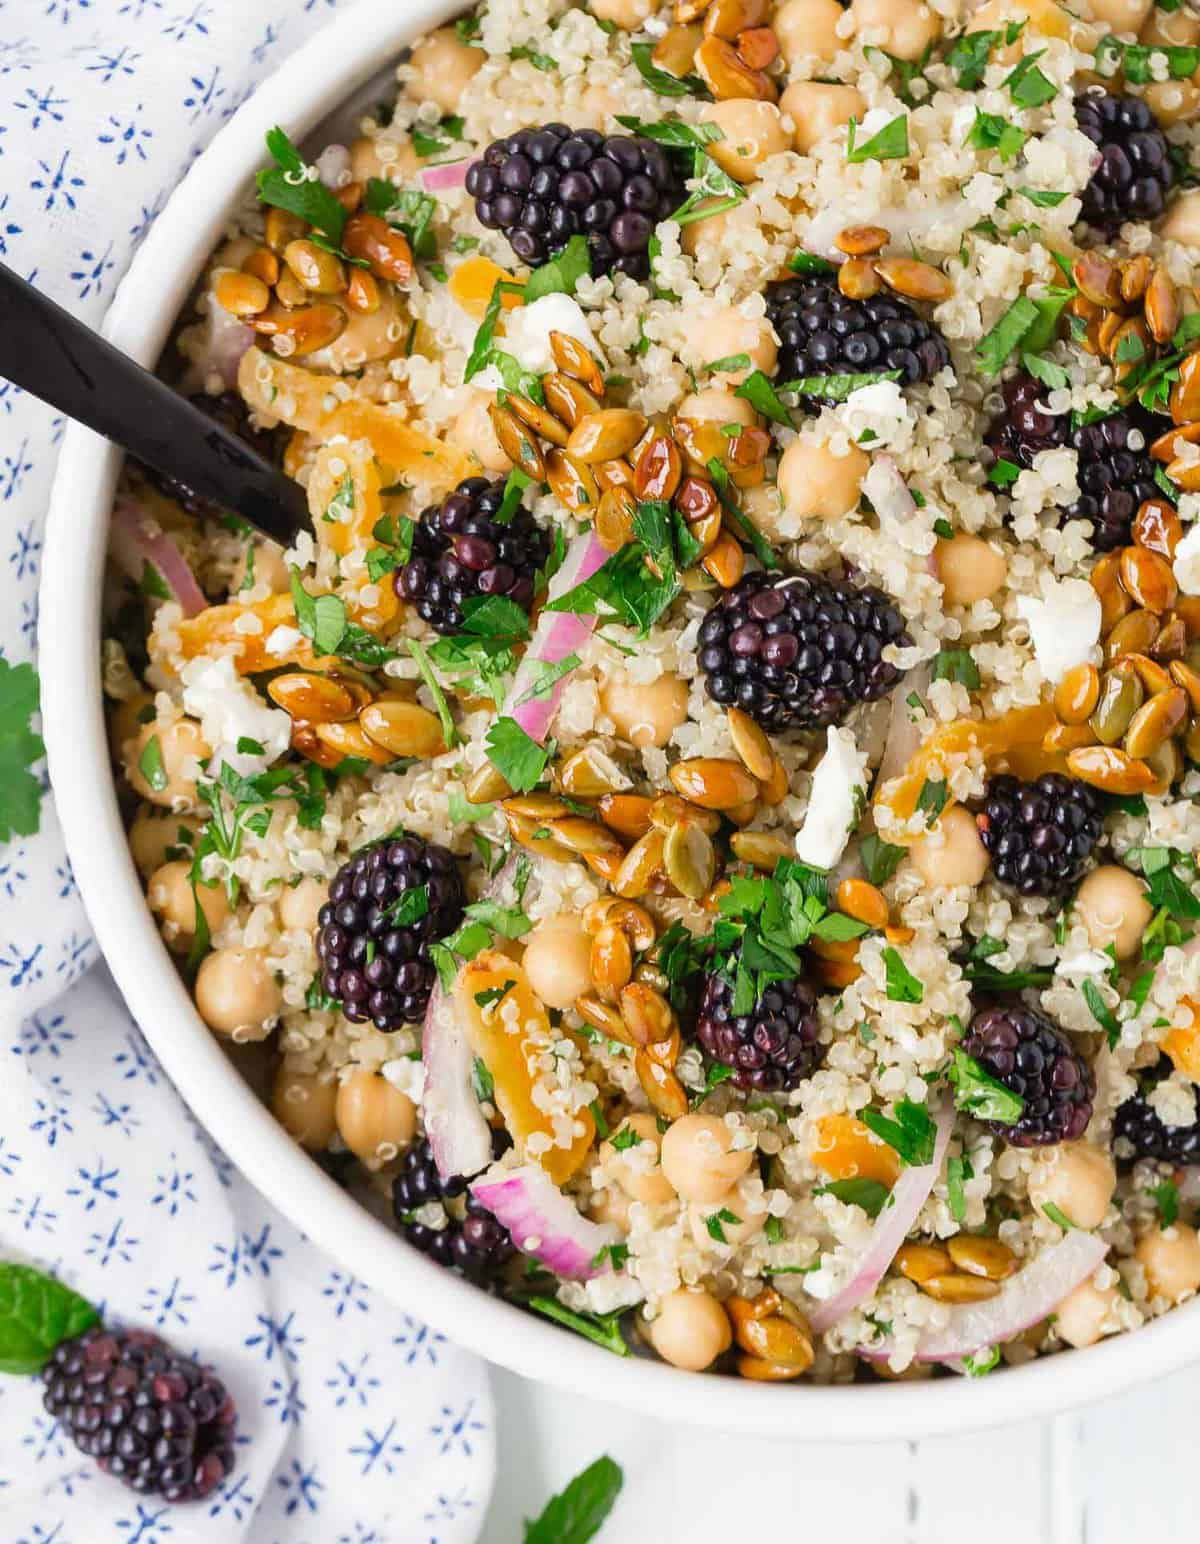 Close up of a salad in a white bowl comprised of quinoa, chickpeas, feta cheese, red onion, blackberries and more.